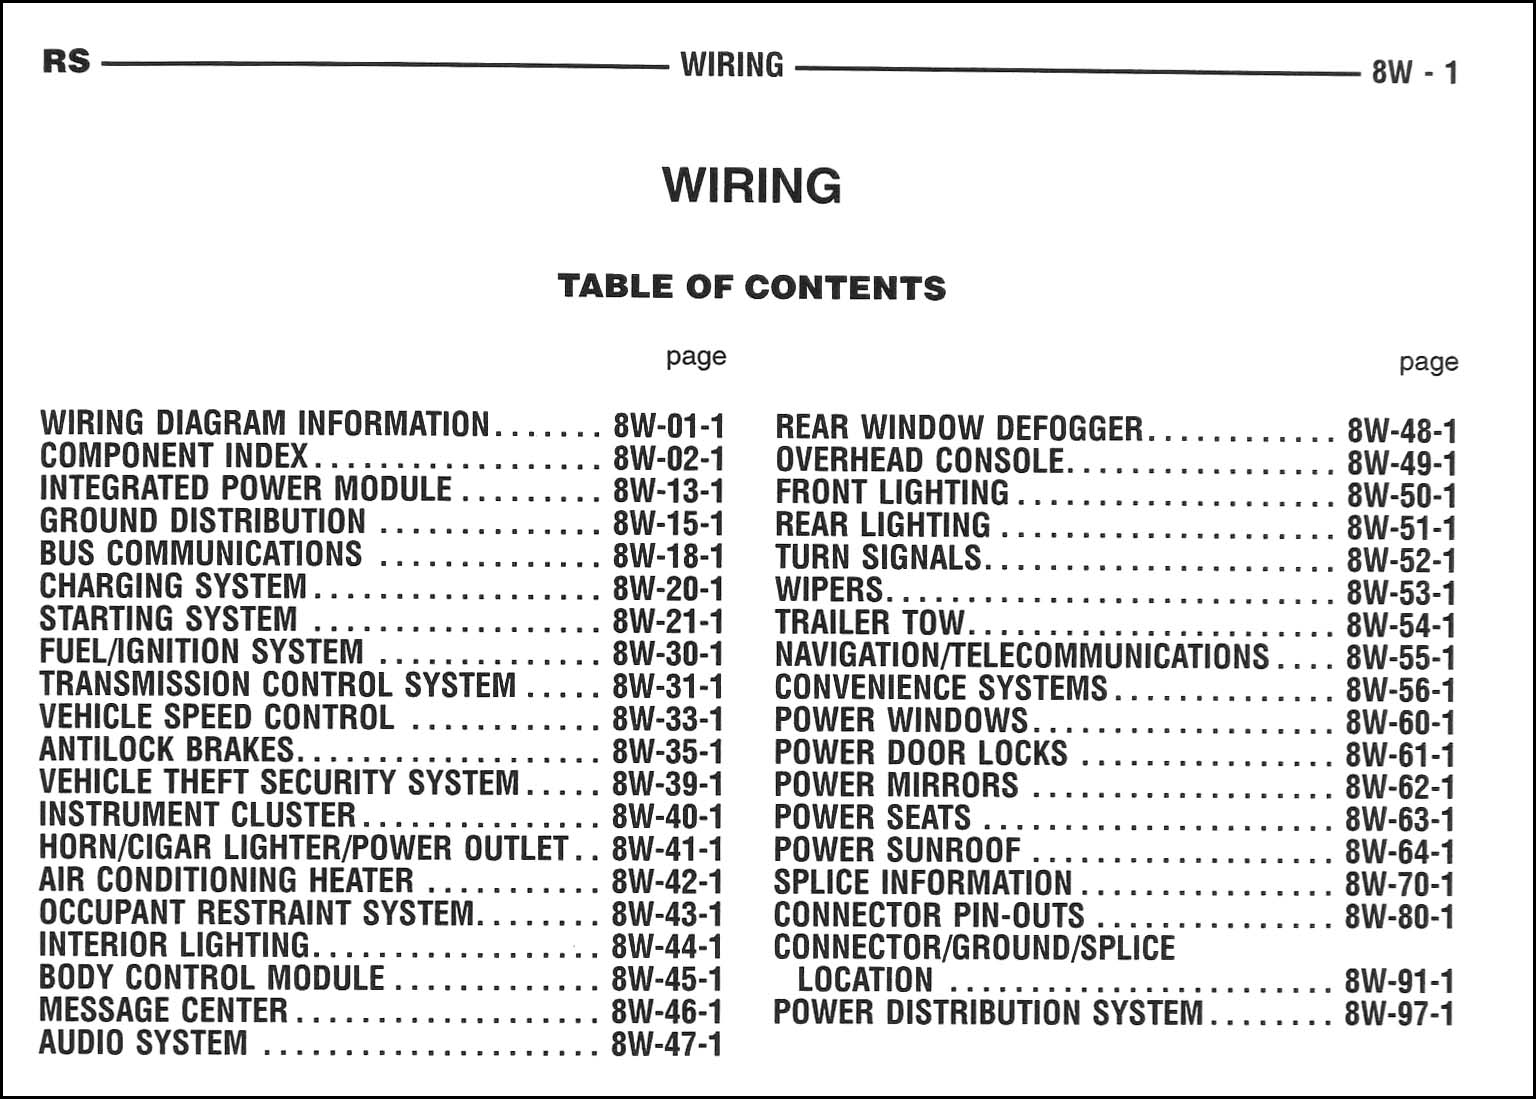 2005 Chysler Town & Country and Dodge Caravan Wiring Diagram Manual  Original · Table of Contents Page